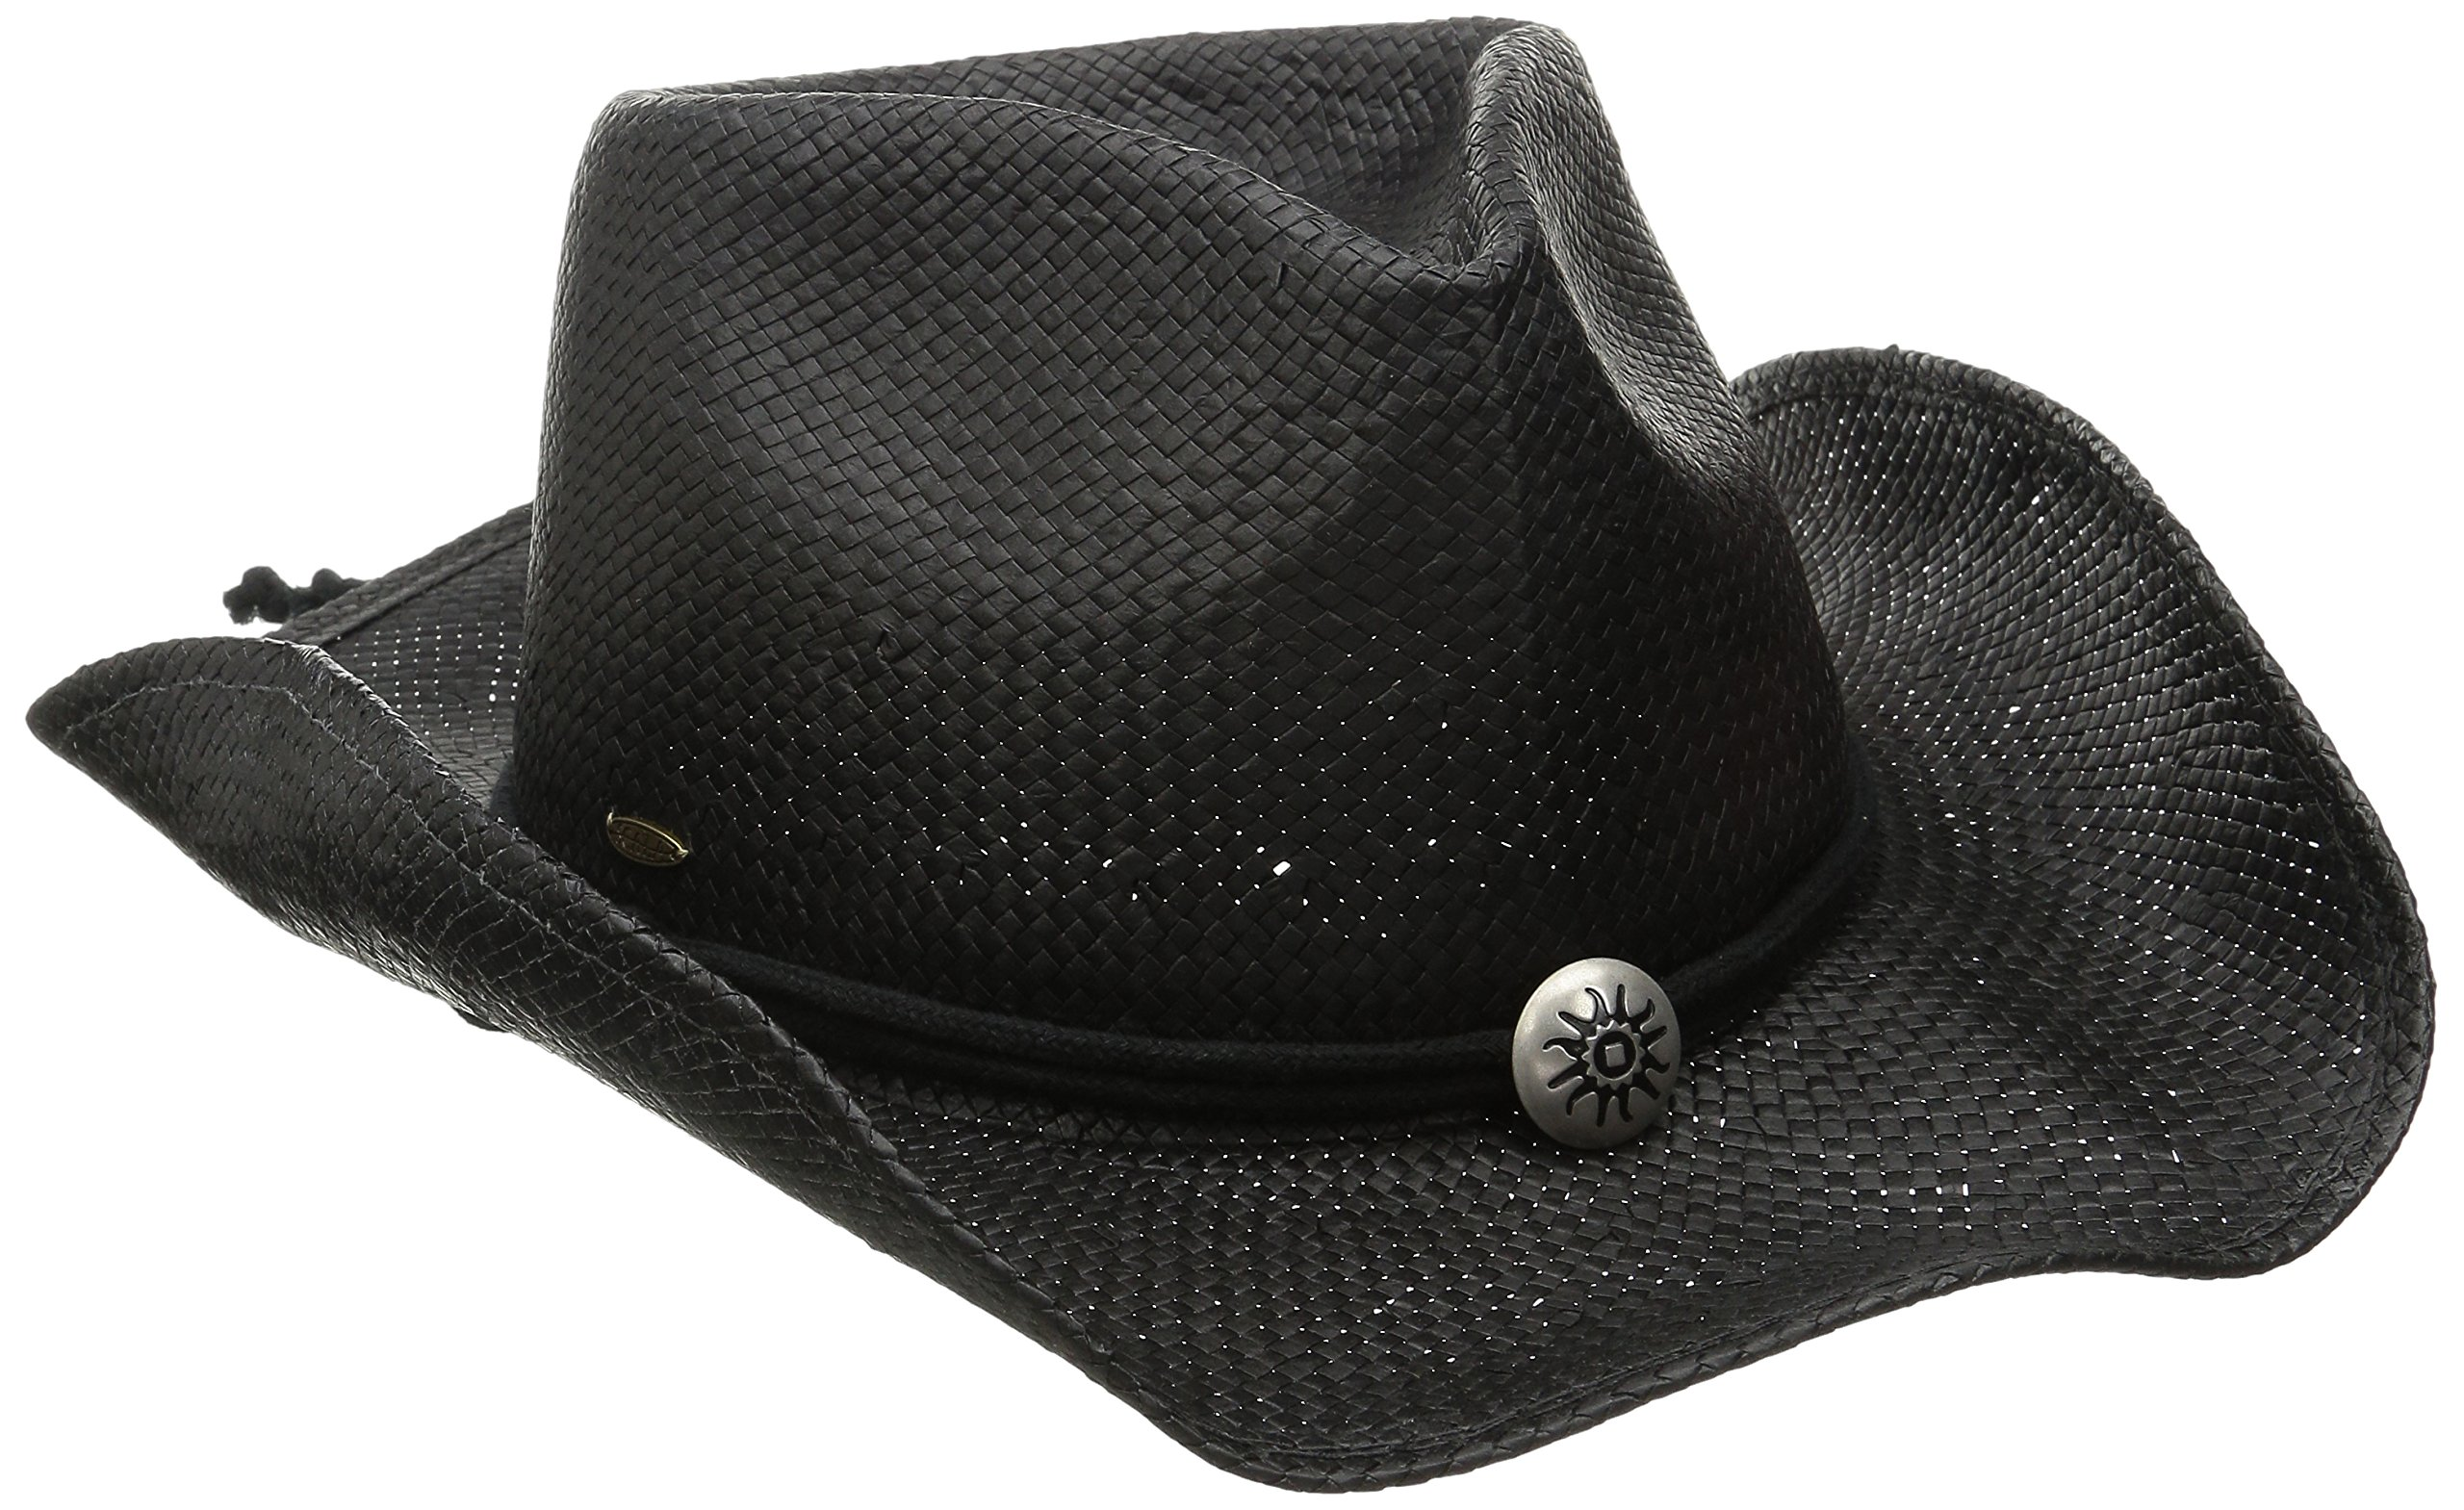 SCALA Women's Shapeable Toyo Western Hat, Black, Small/Medium by SCALA